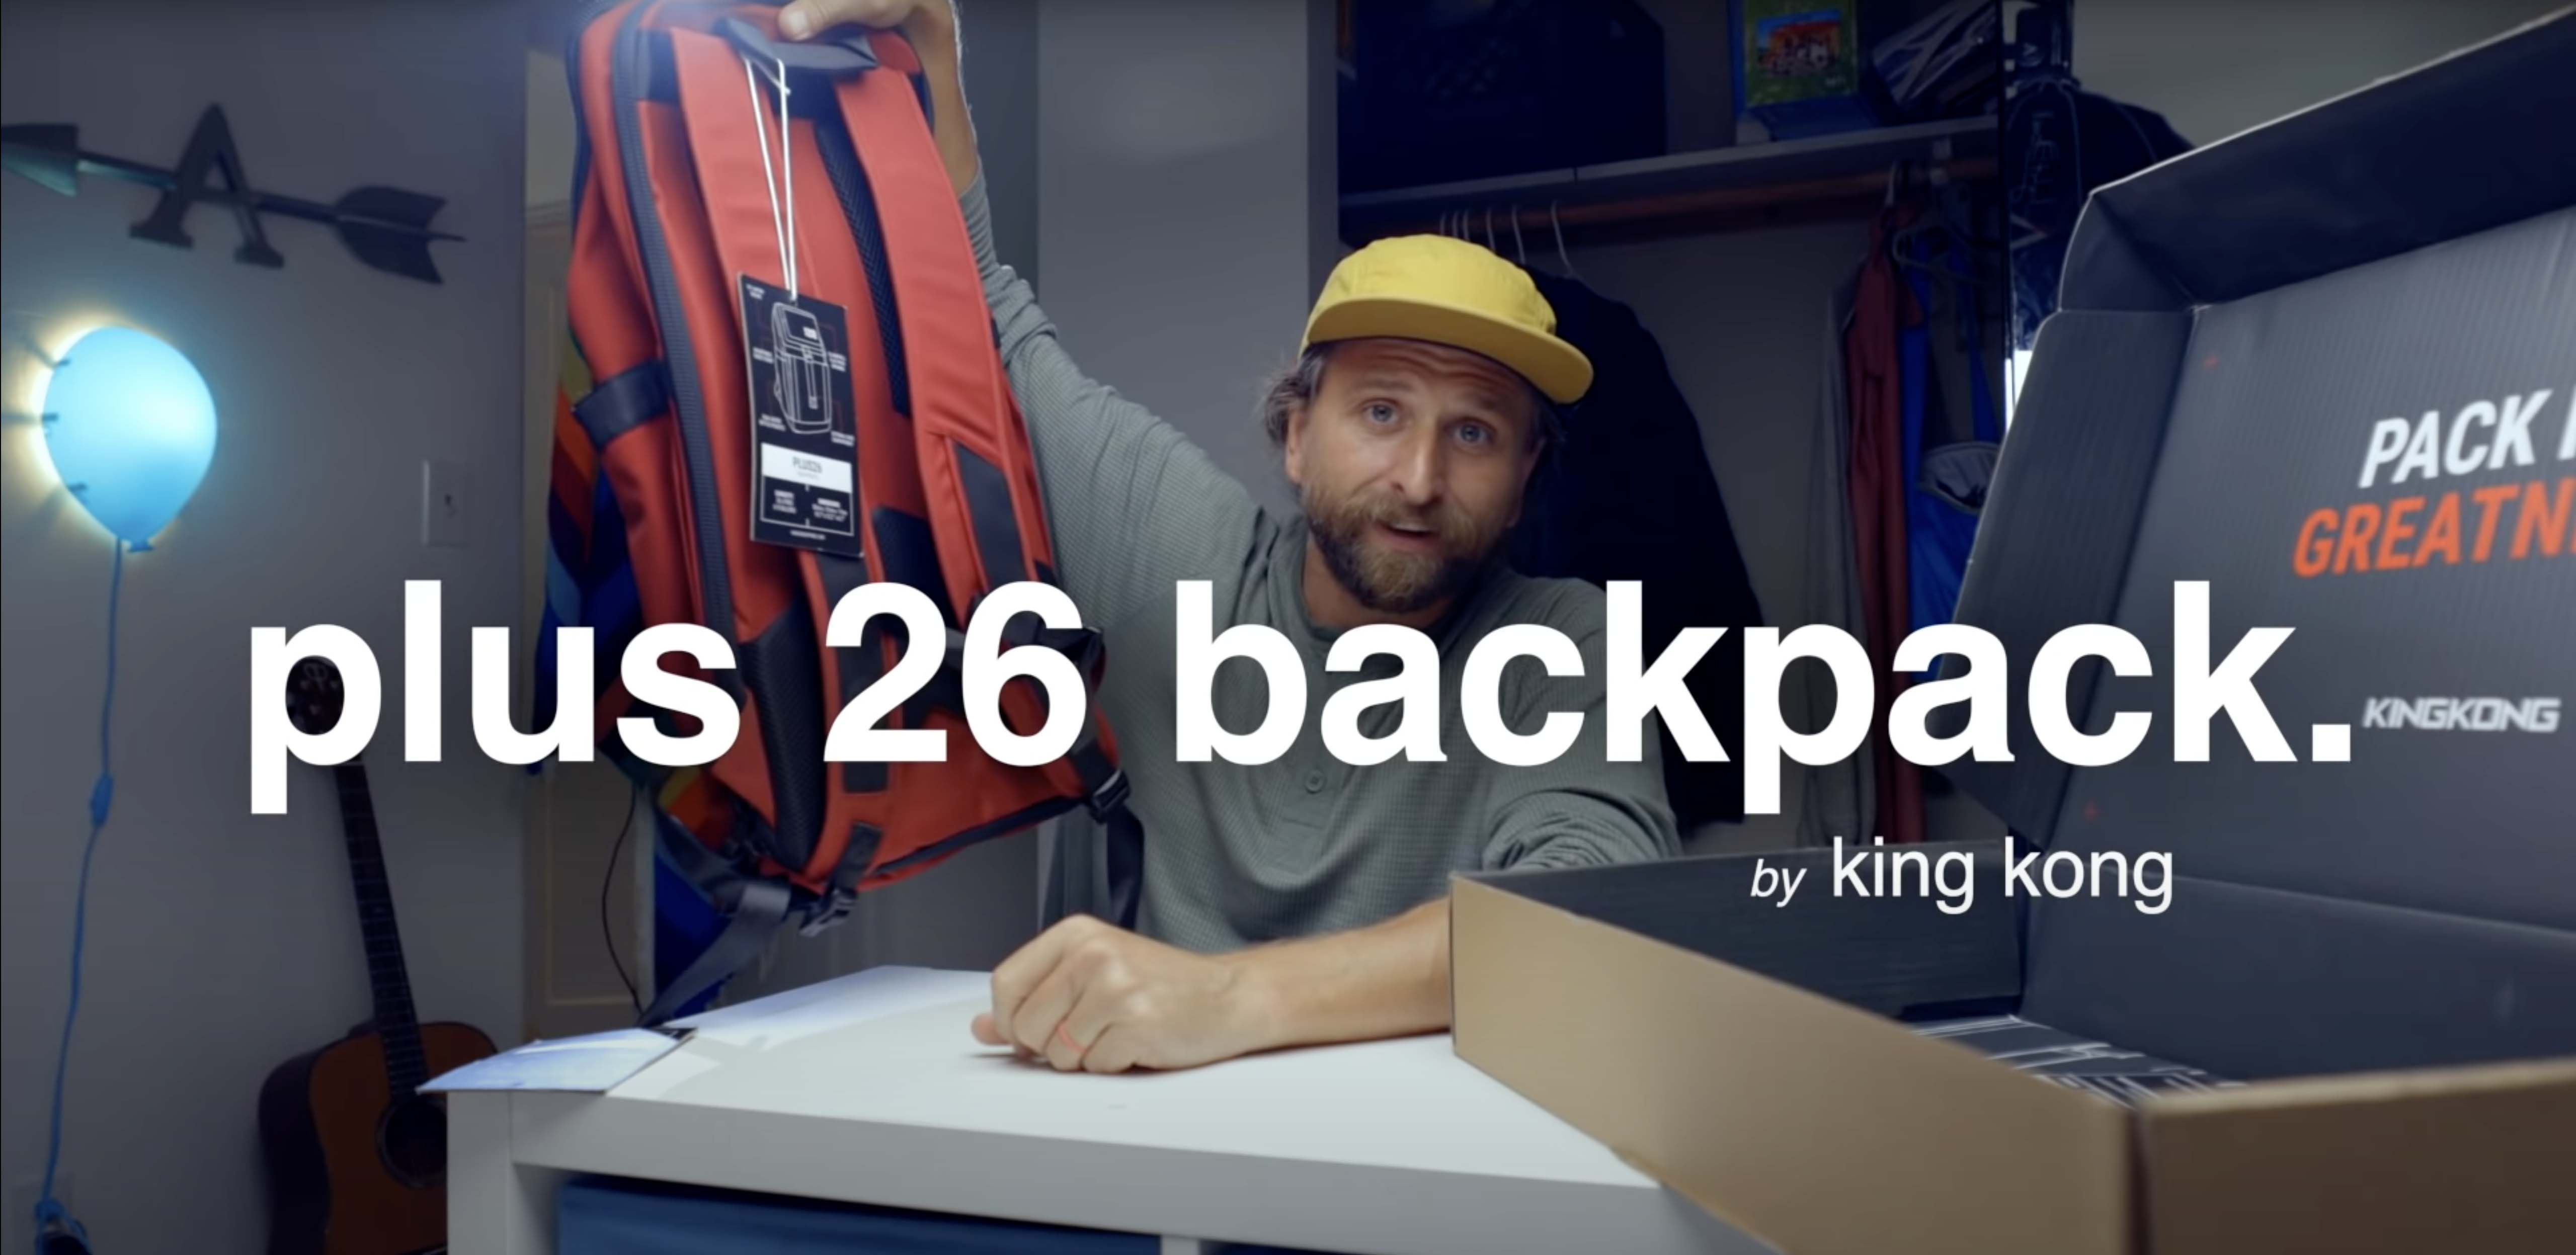 Chase Reeves Backpack Review of King Kong PLUS26